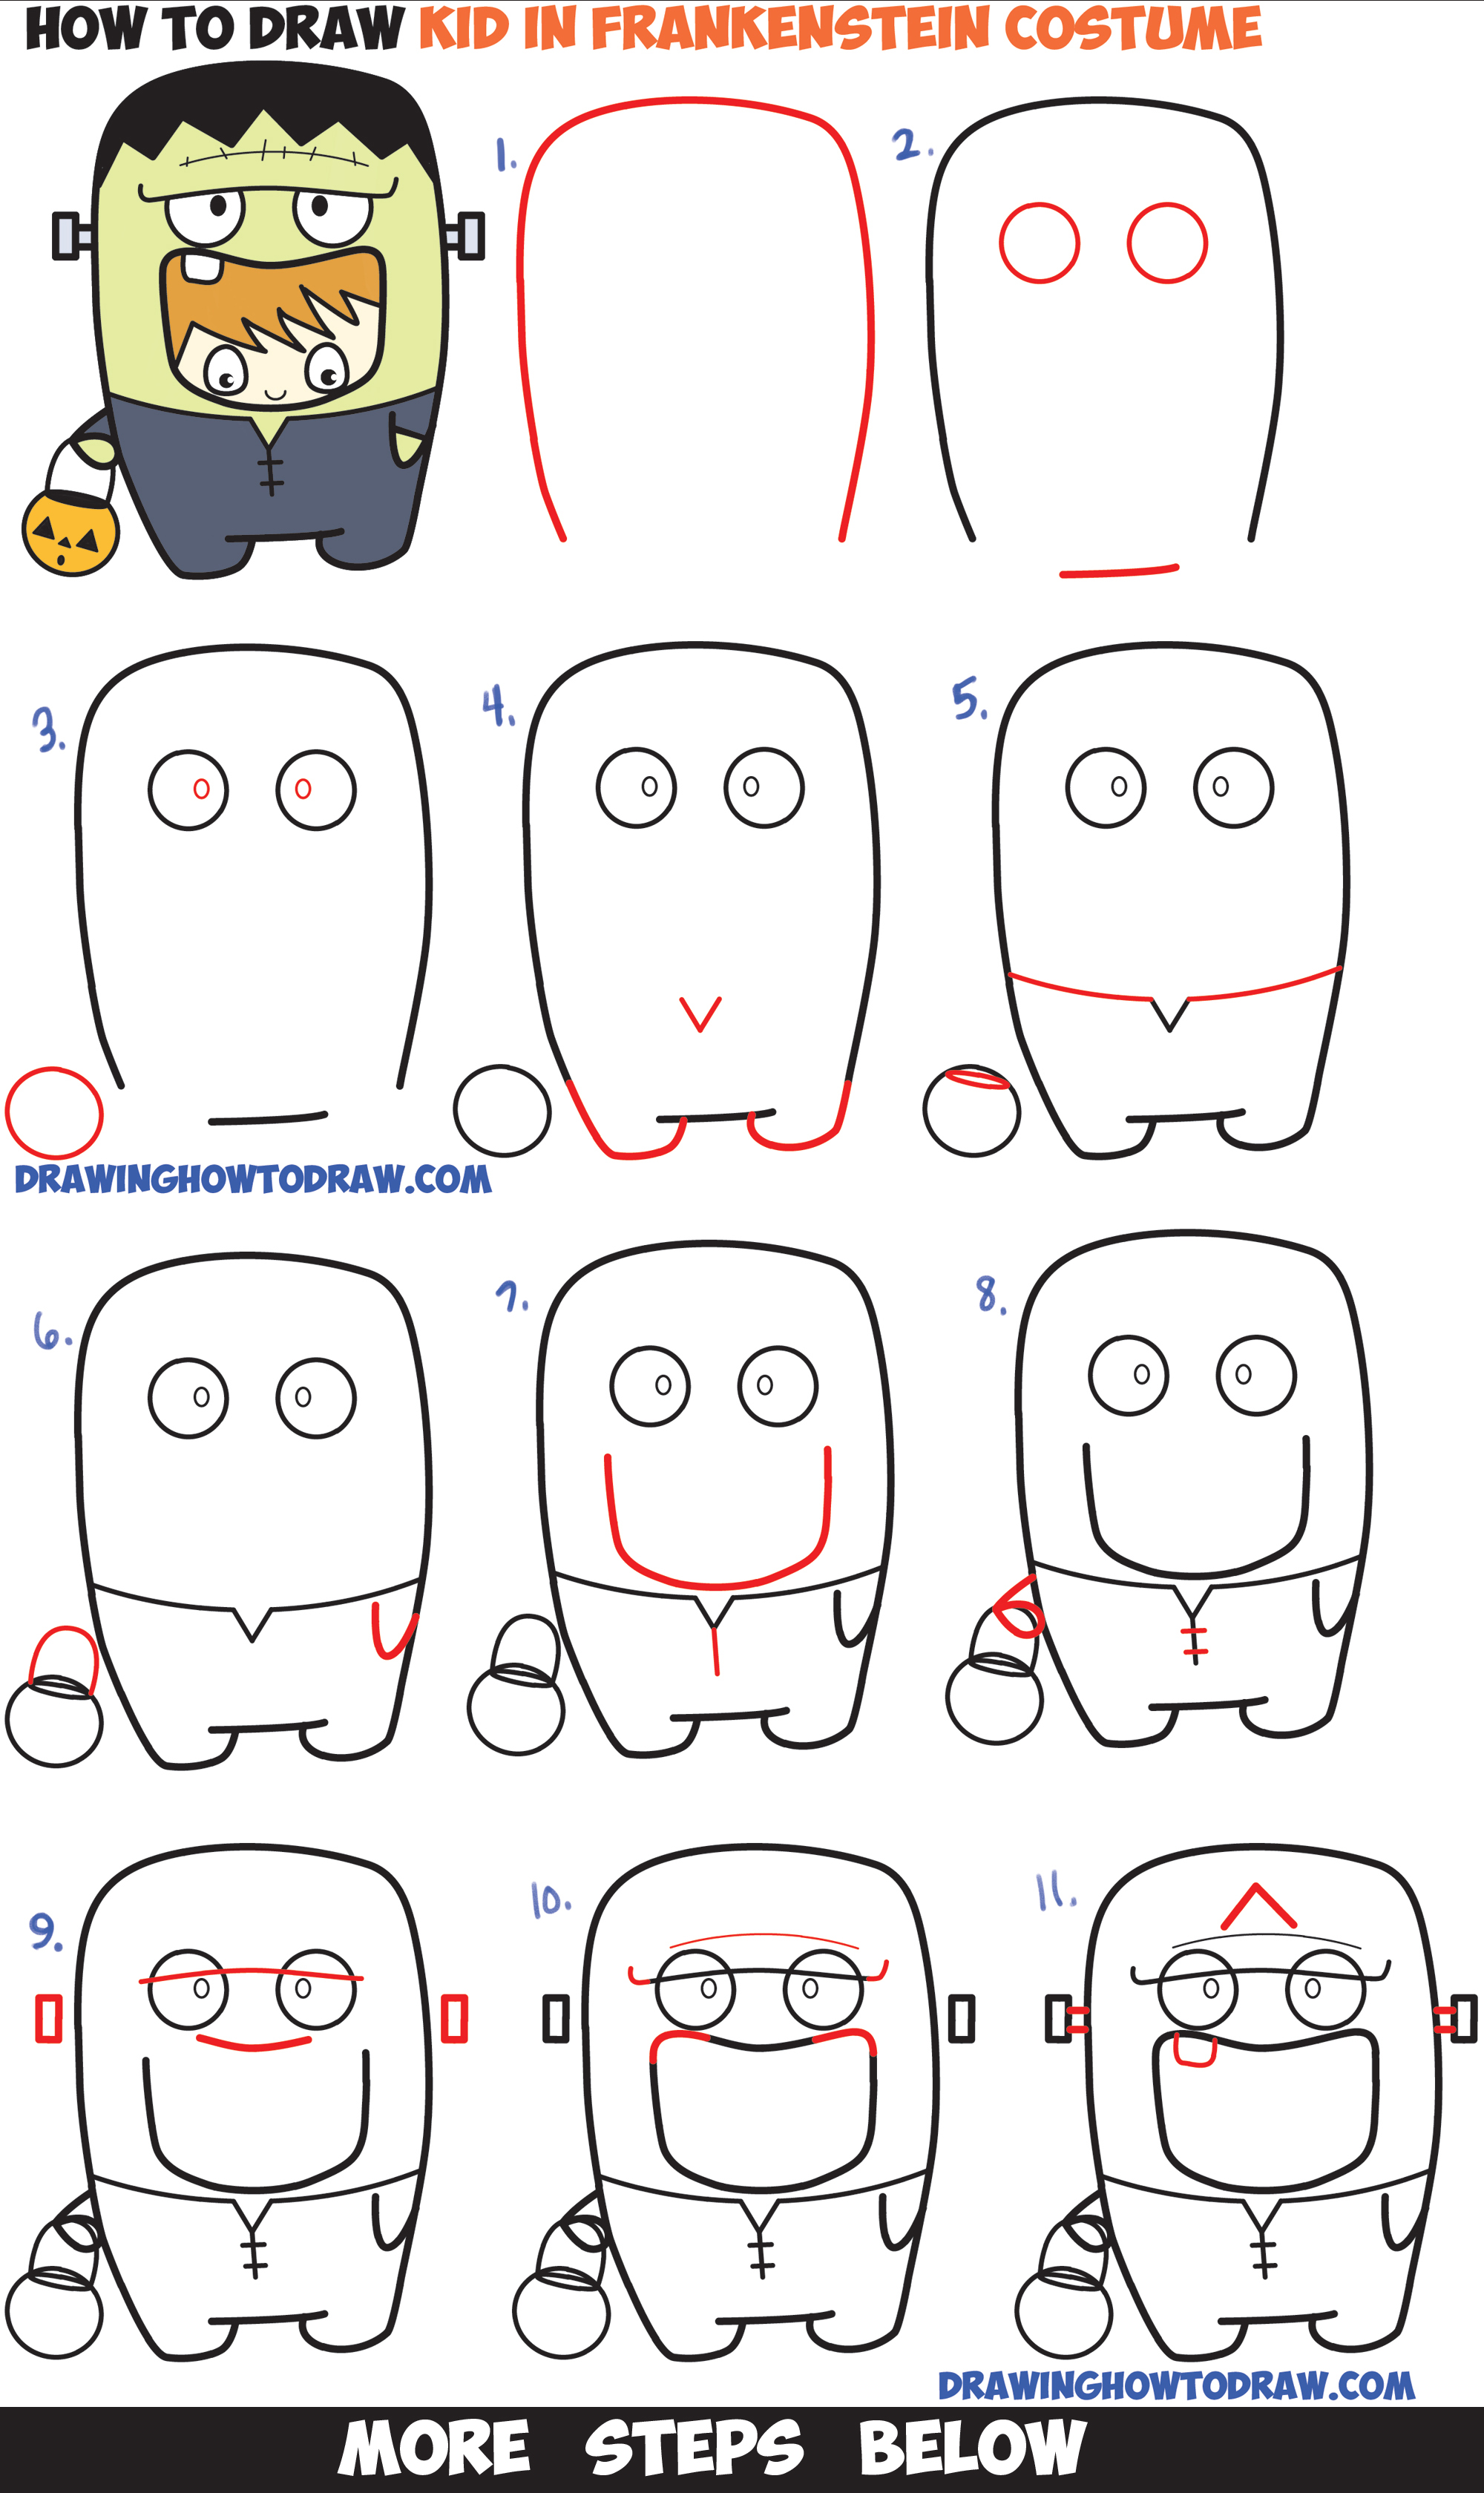 How to Draw a Kid in a Halloween Frankenstein Costume (Cute Kawaii) Easy Step by Step Drawing Tutorial for Kids